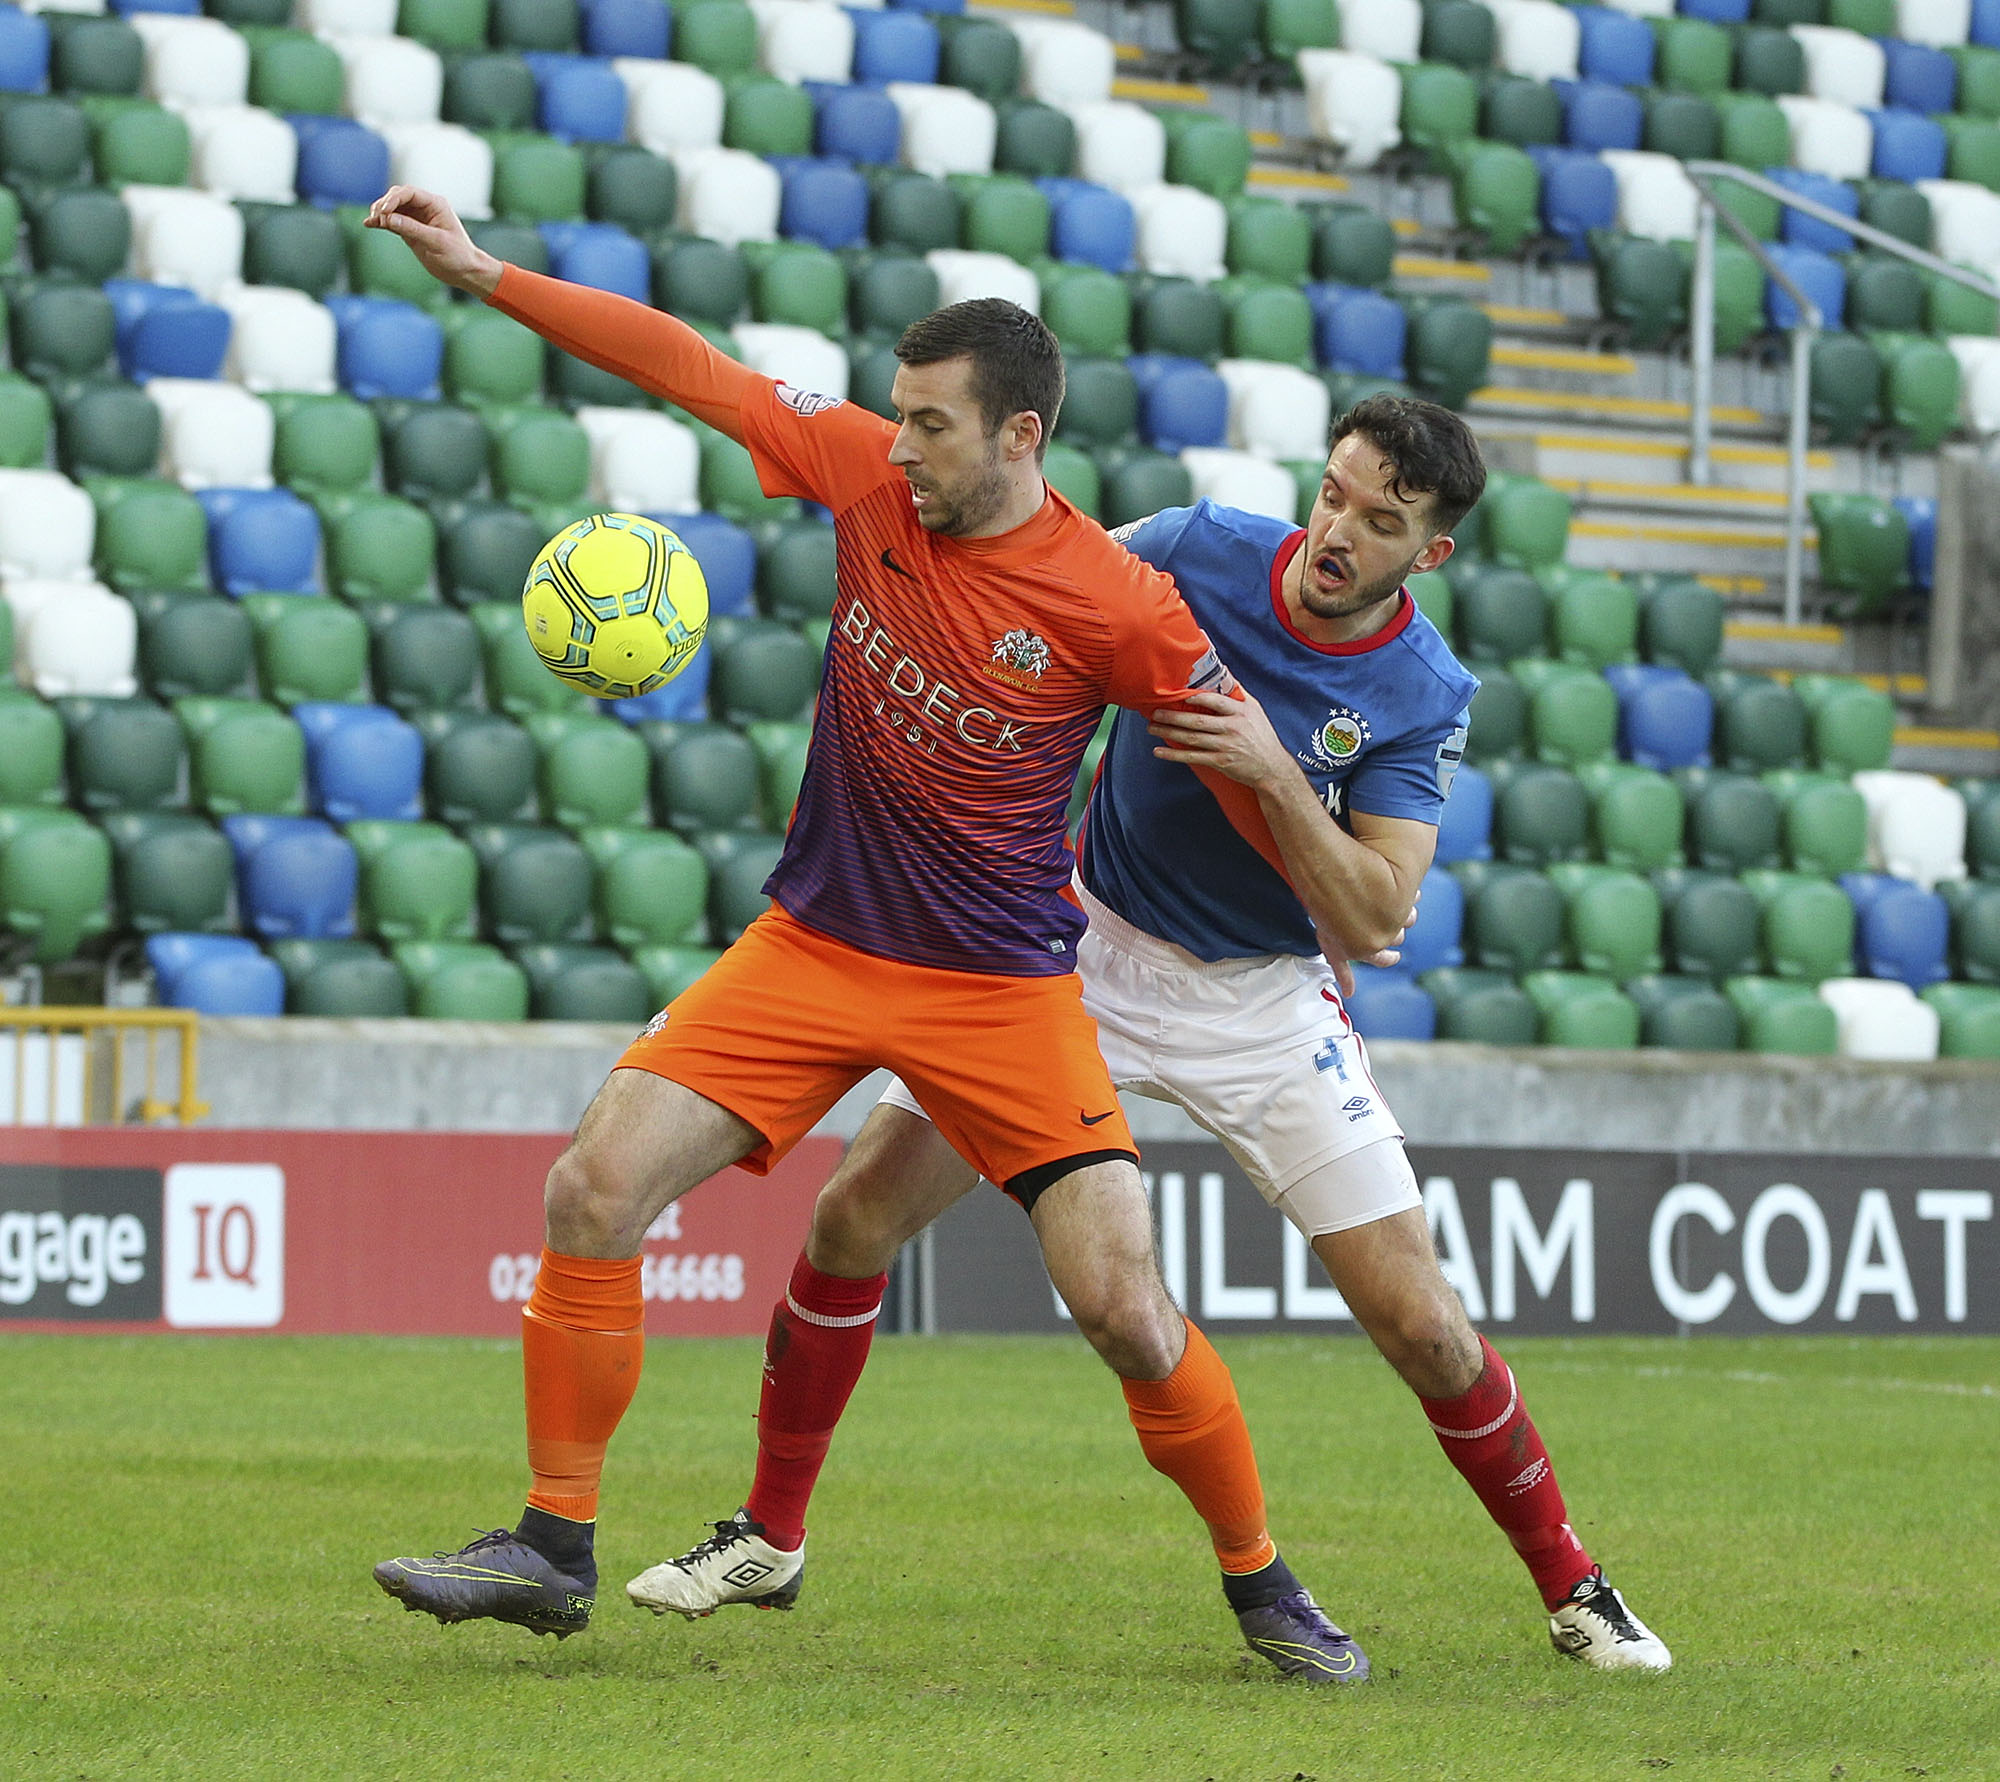 Preview: Linfield v Glenavon